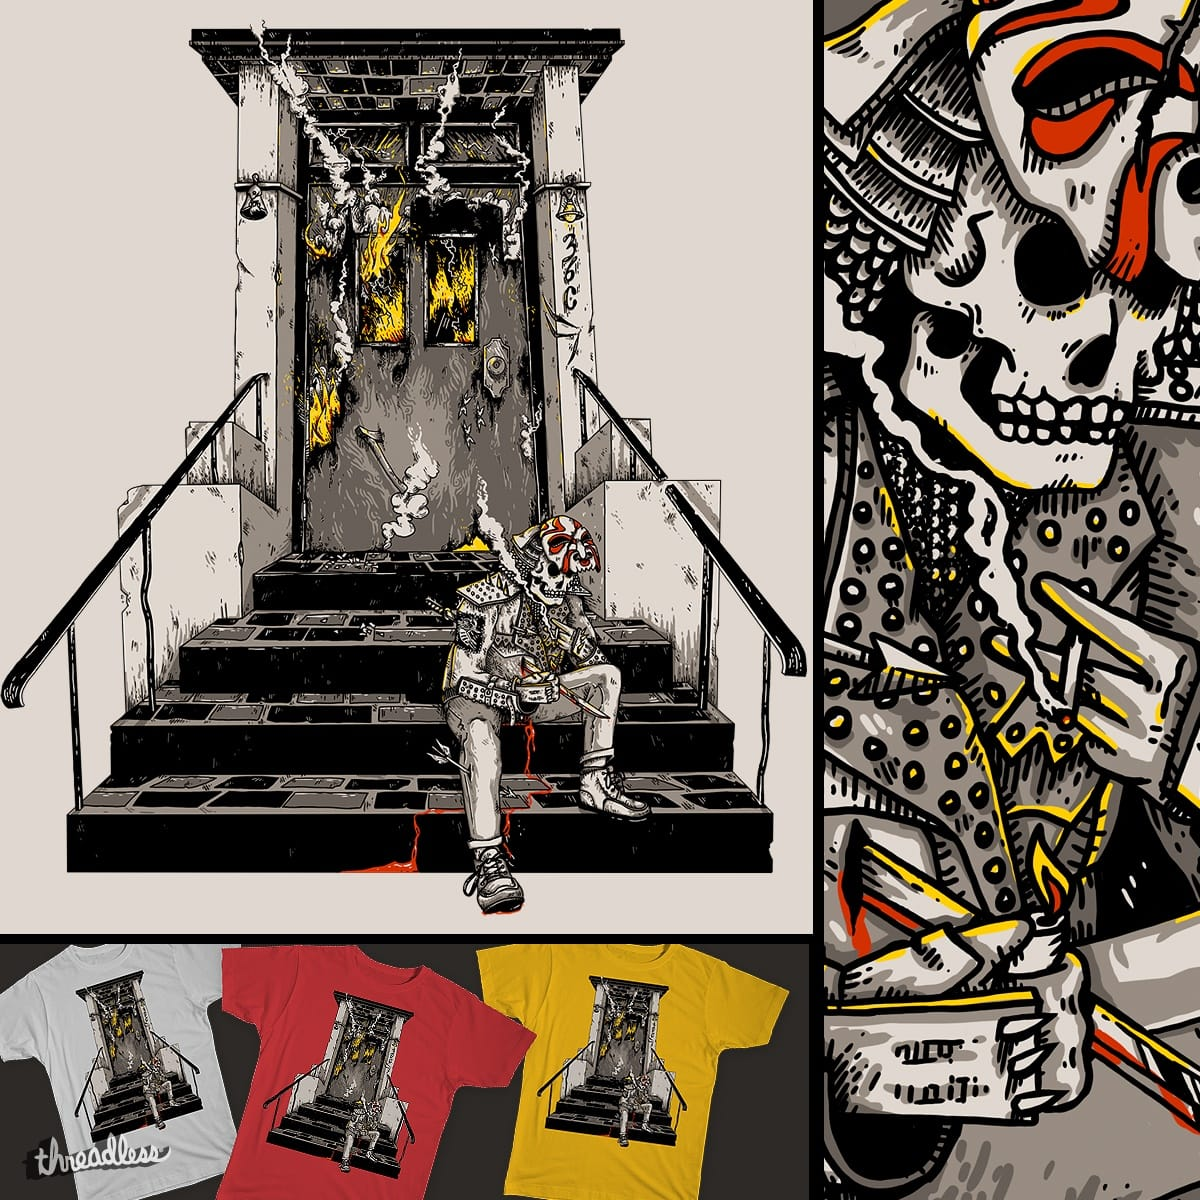 On Death's Doorstep by EyeSick on Threadless